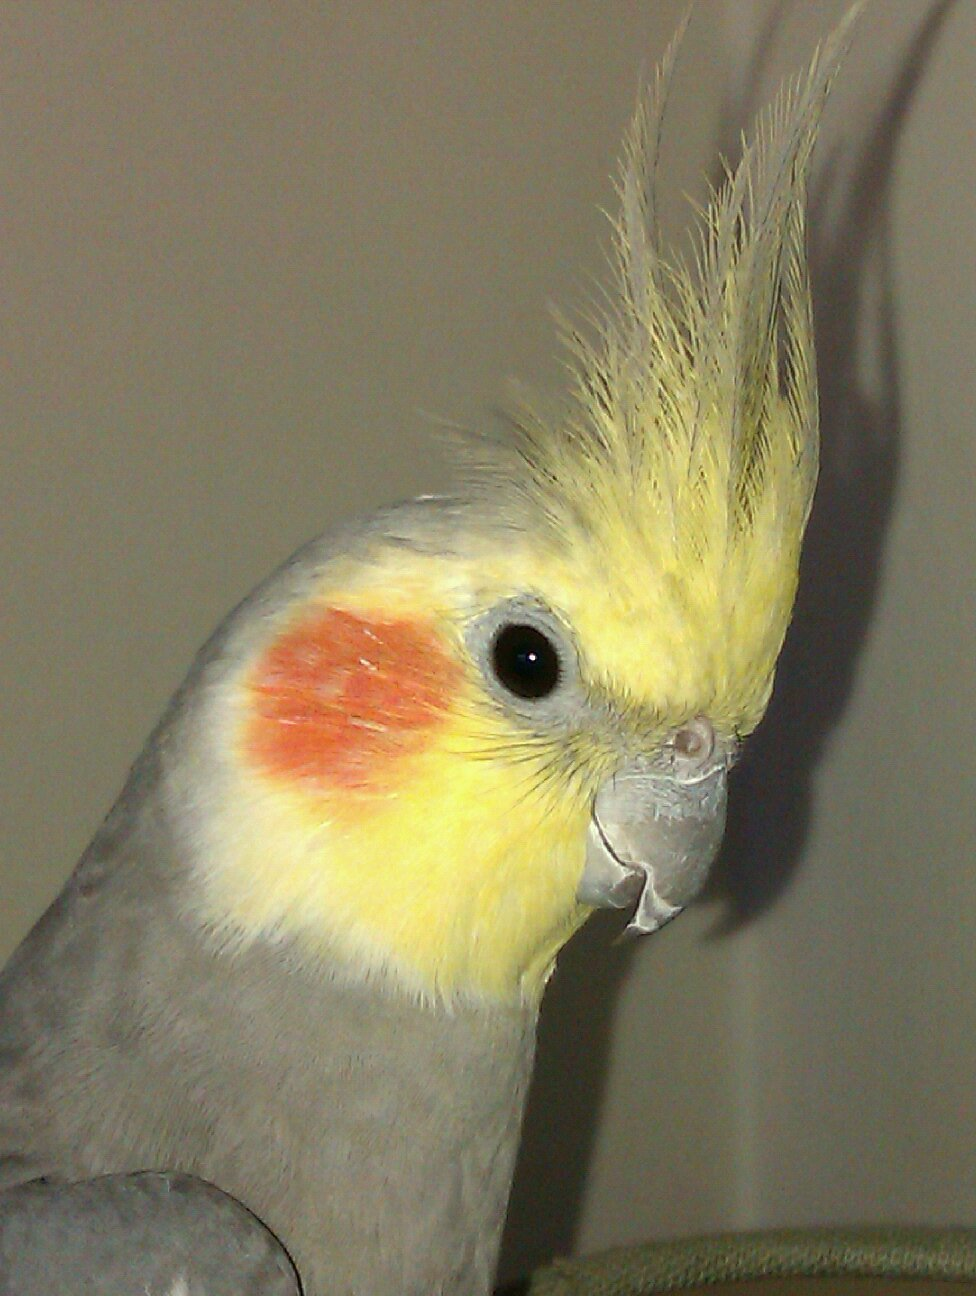 Cockatiels are very popular, intelligent companion birds.